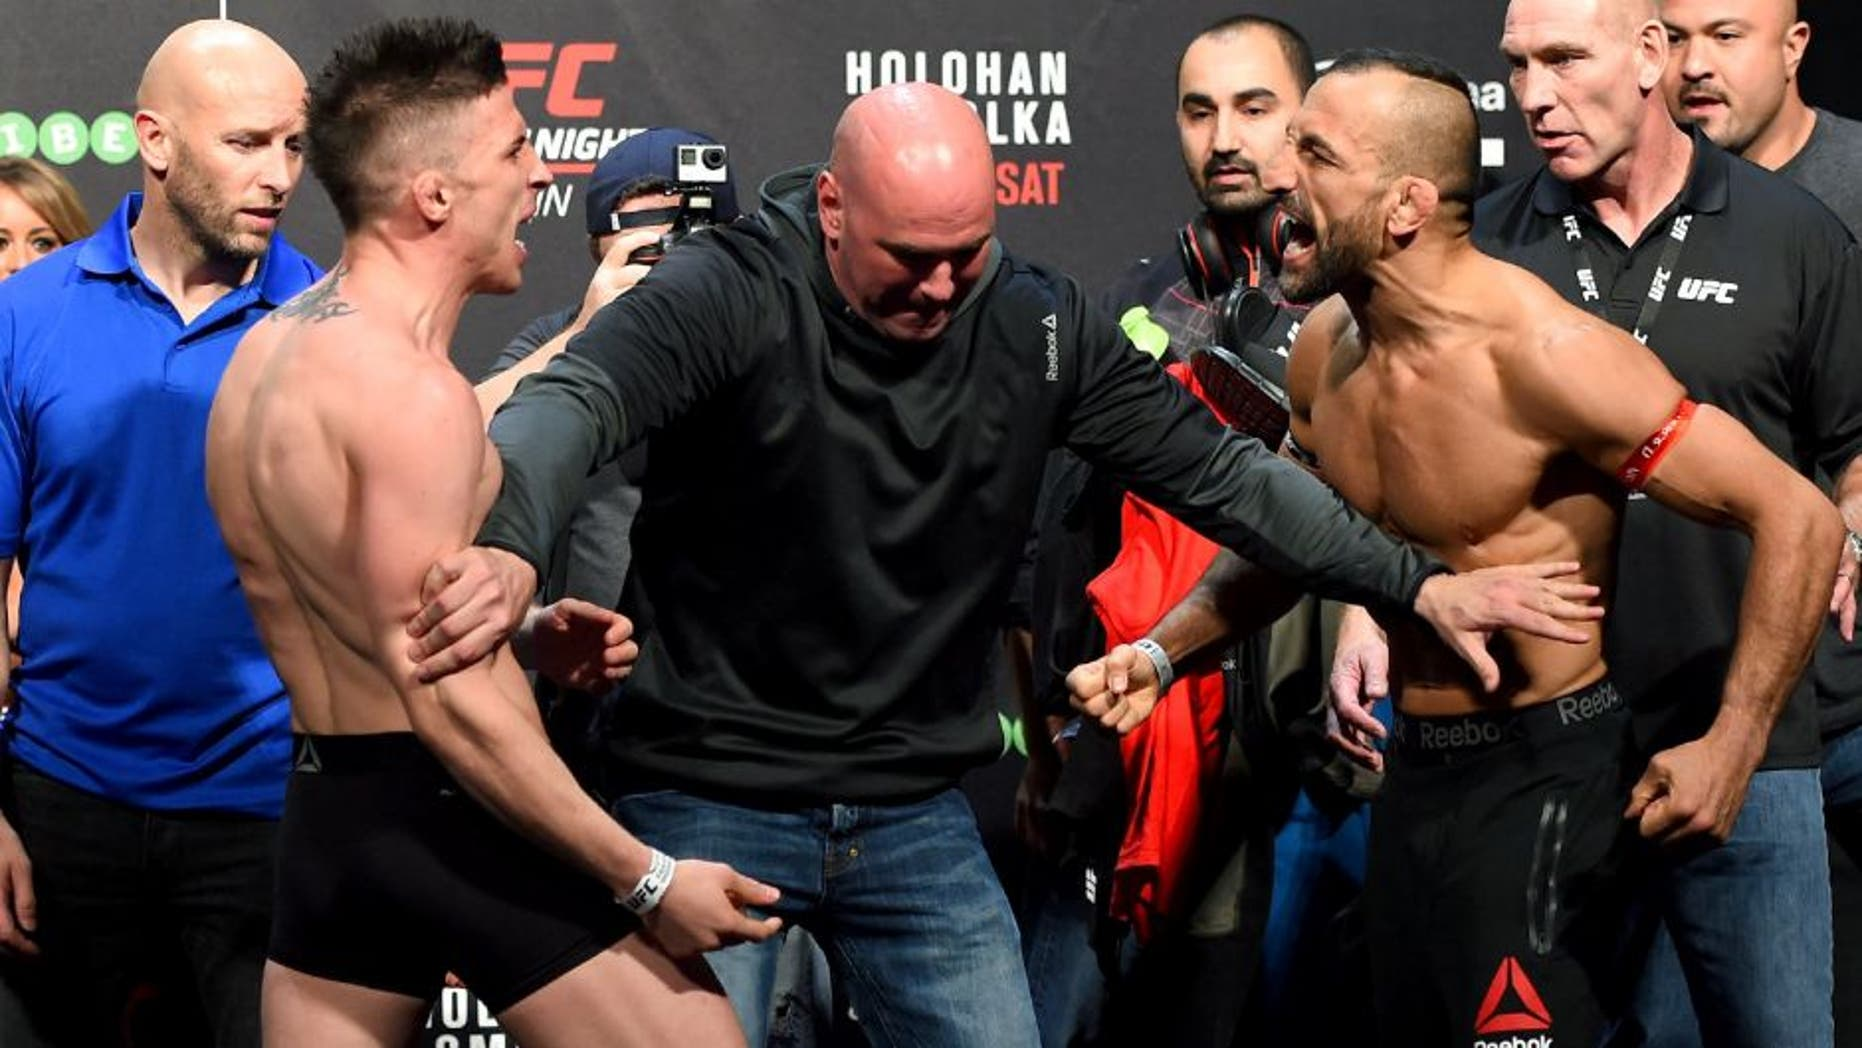 DUBLIN, IRELAND - OCTOBER 23: (L-R) Opponents Norman Parke of Northern Ireland and Reza Madadi of Sweden face off during the UFC weigh-in at 3Arena on October 23, 2015 in Dublin, Ireland. (Photo by Josh Hedges/Zuffa LLC/Zuffa LLC via Getty Images)